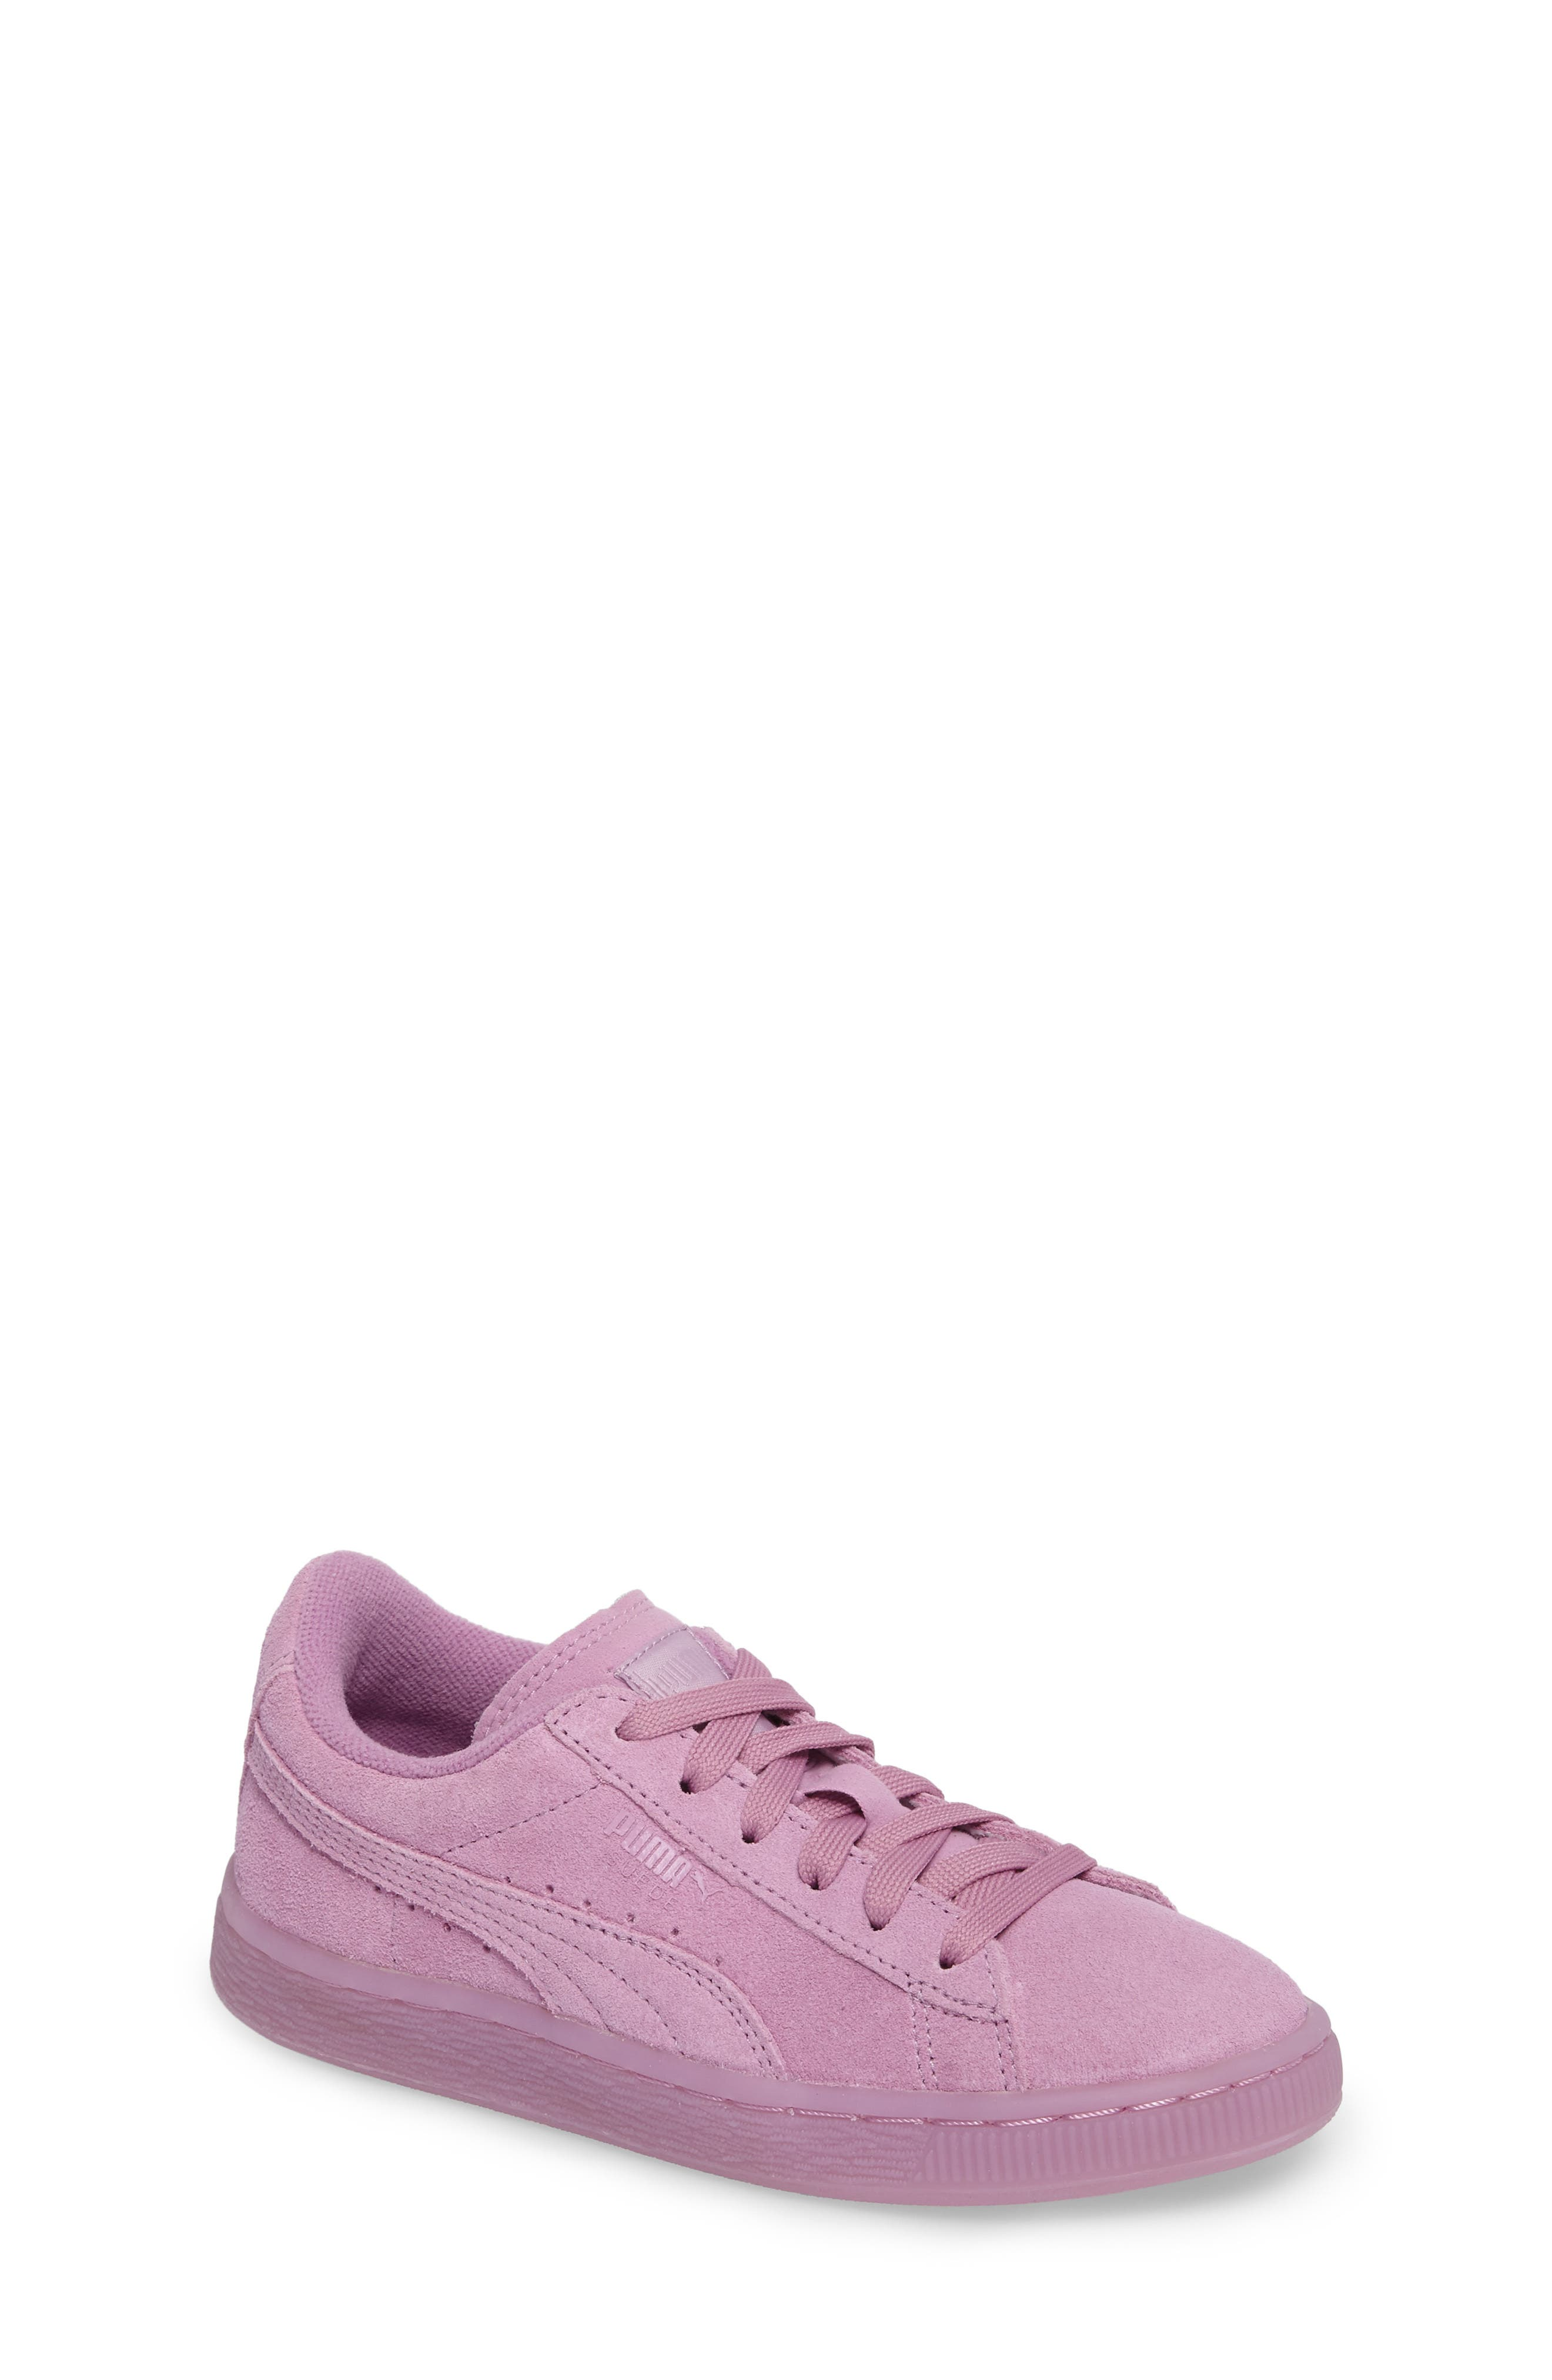 Iced Sneaker,                         Main,                         color, 500